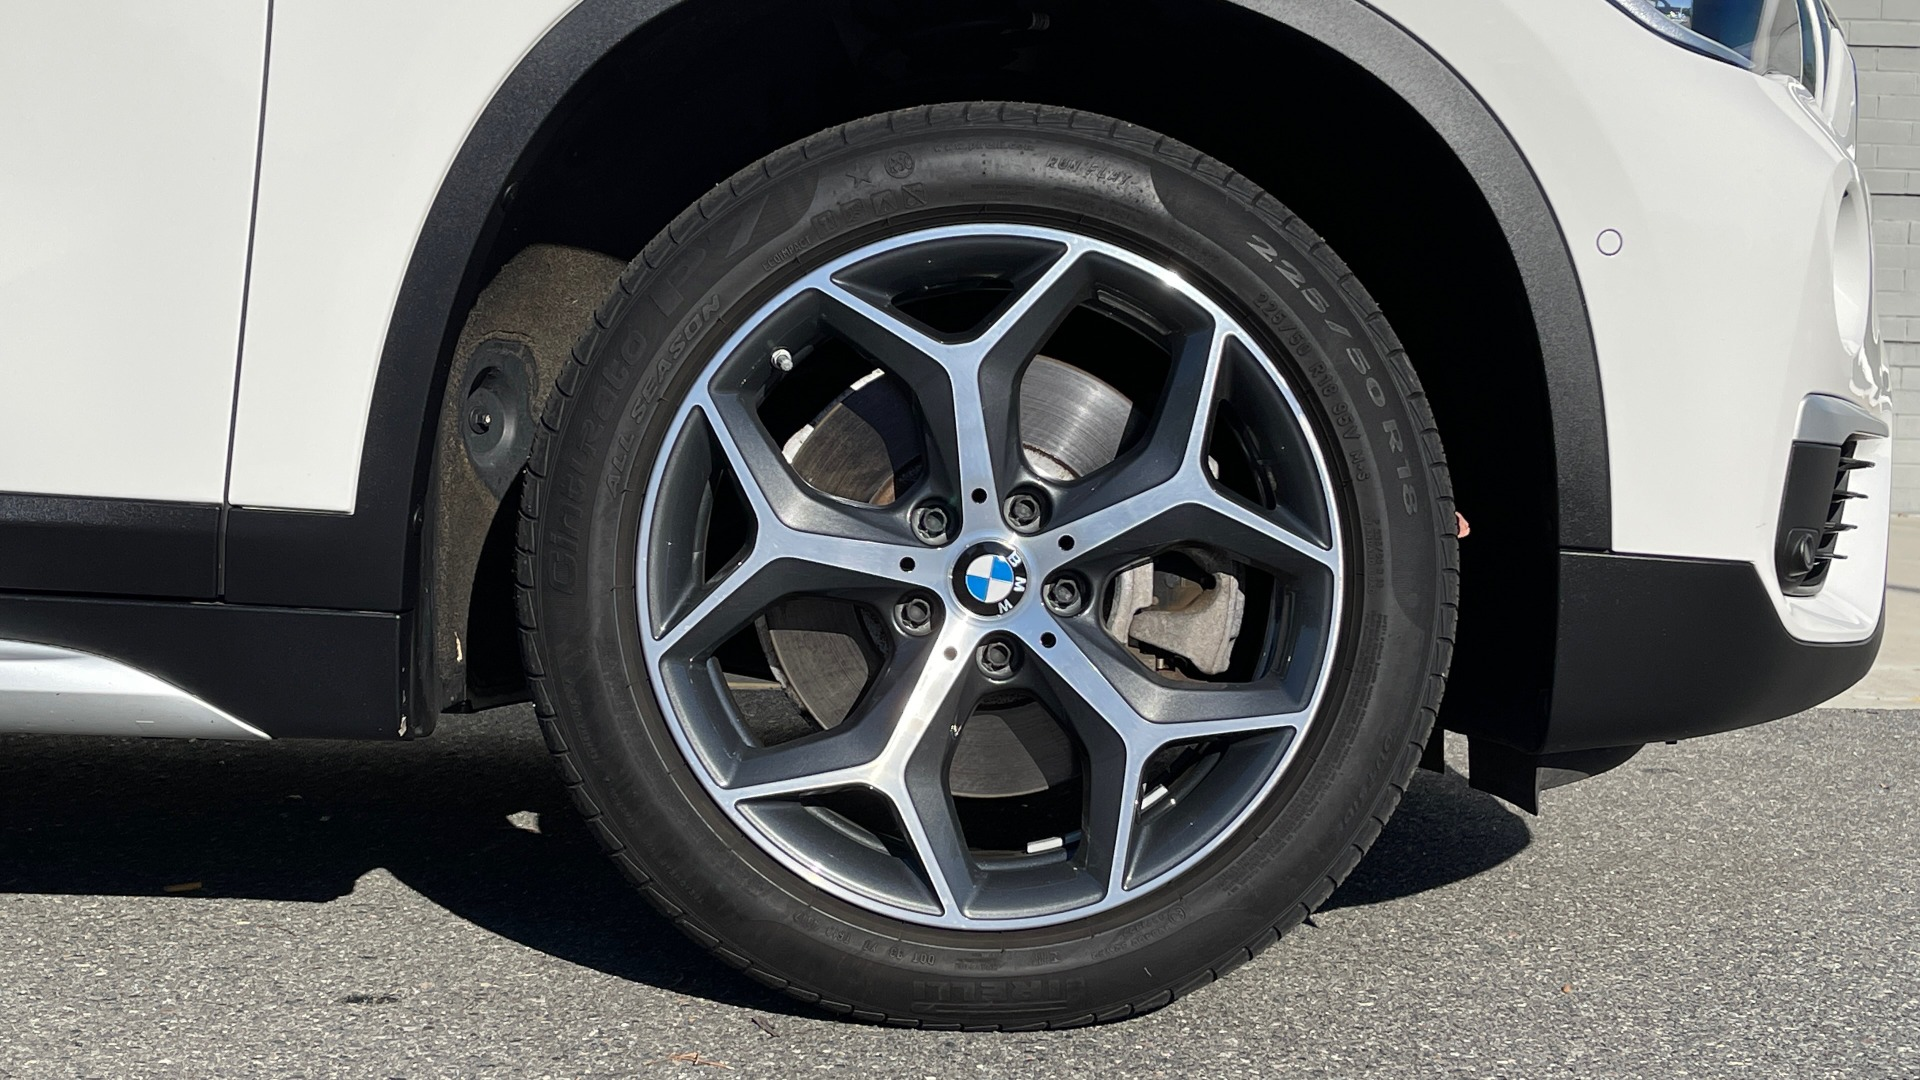 Used 2018 BMW X1 XDRIVE28I / CONV PKG / PANO-ROOF / PARK ASST / REARVIEW for sale $31,995 at Formula Imports in Charlotte NC 28227 61